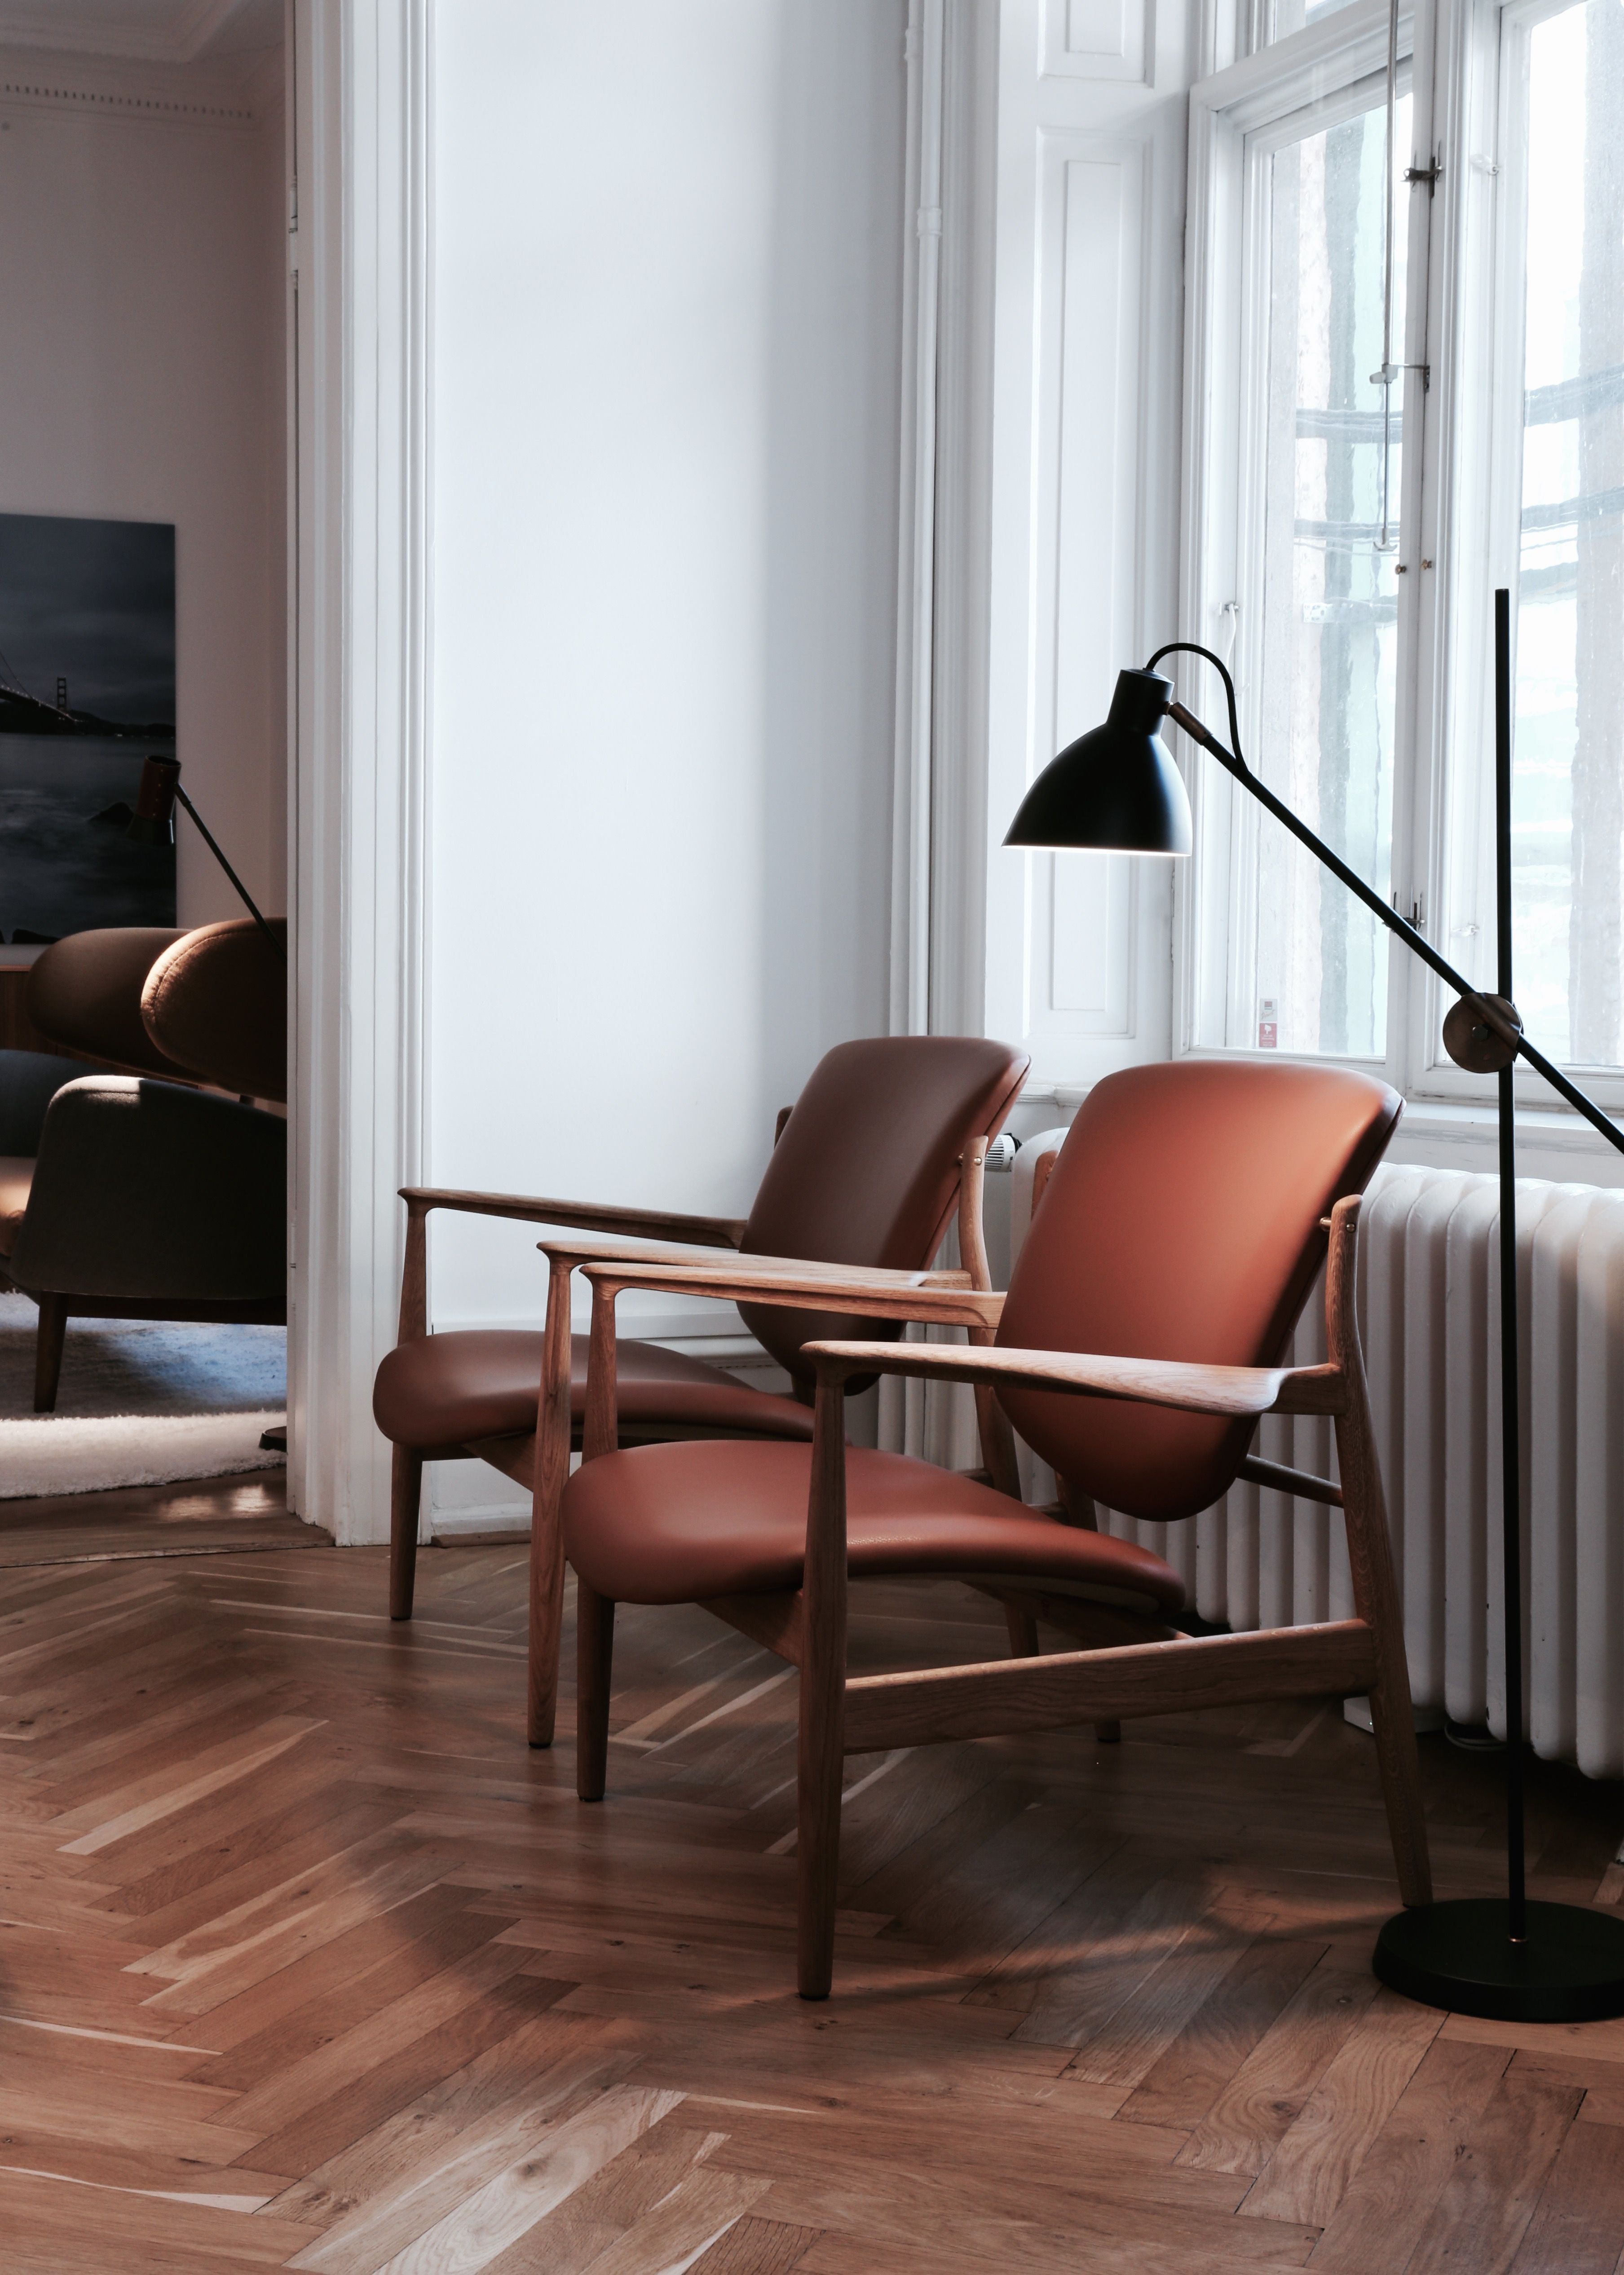 A Pair Of Finn Juhl Chairs Mid Century Modern Danish Designer Furniture The France Chair Was